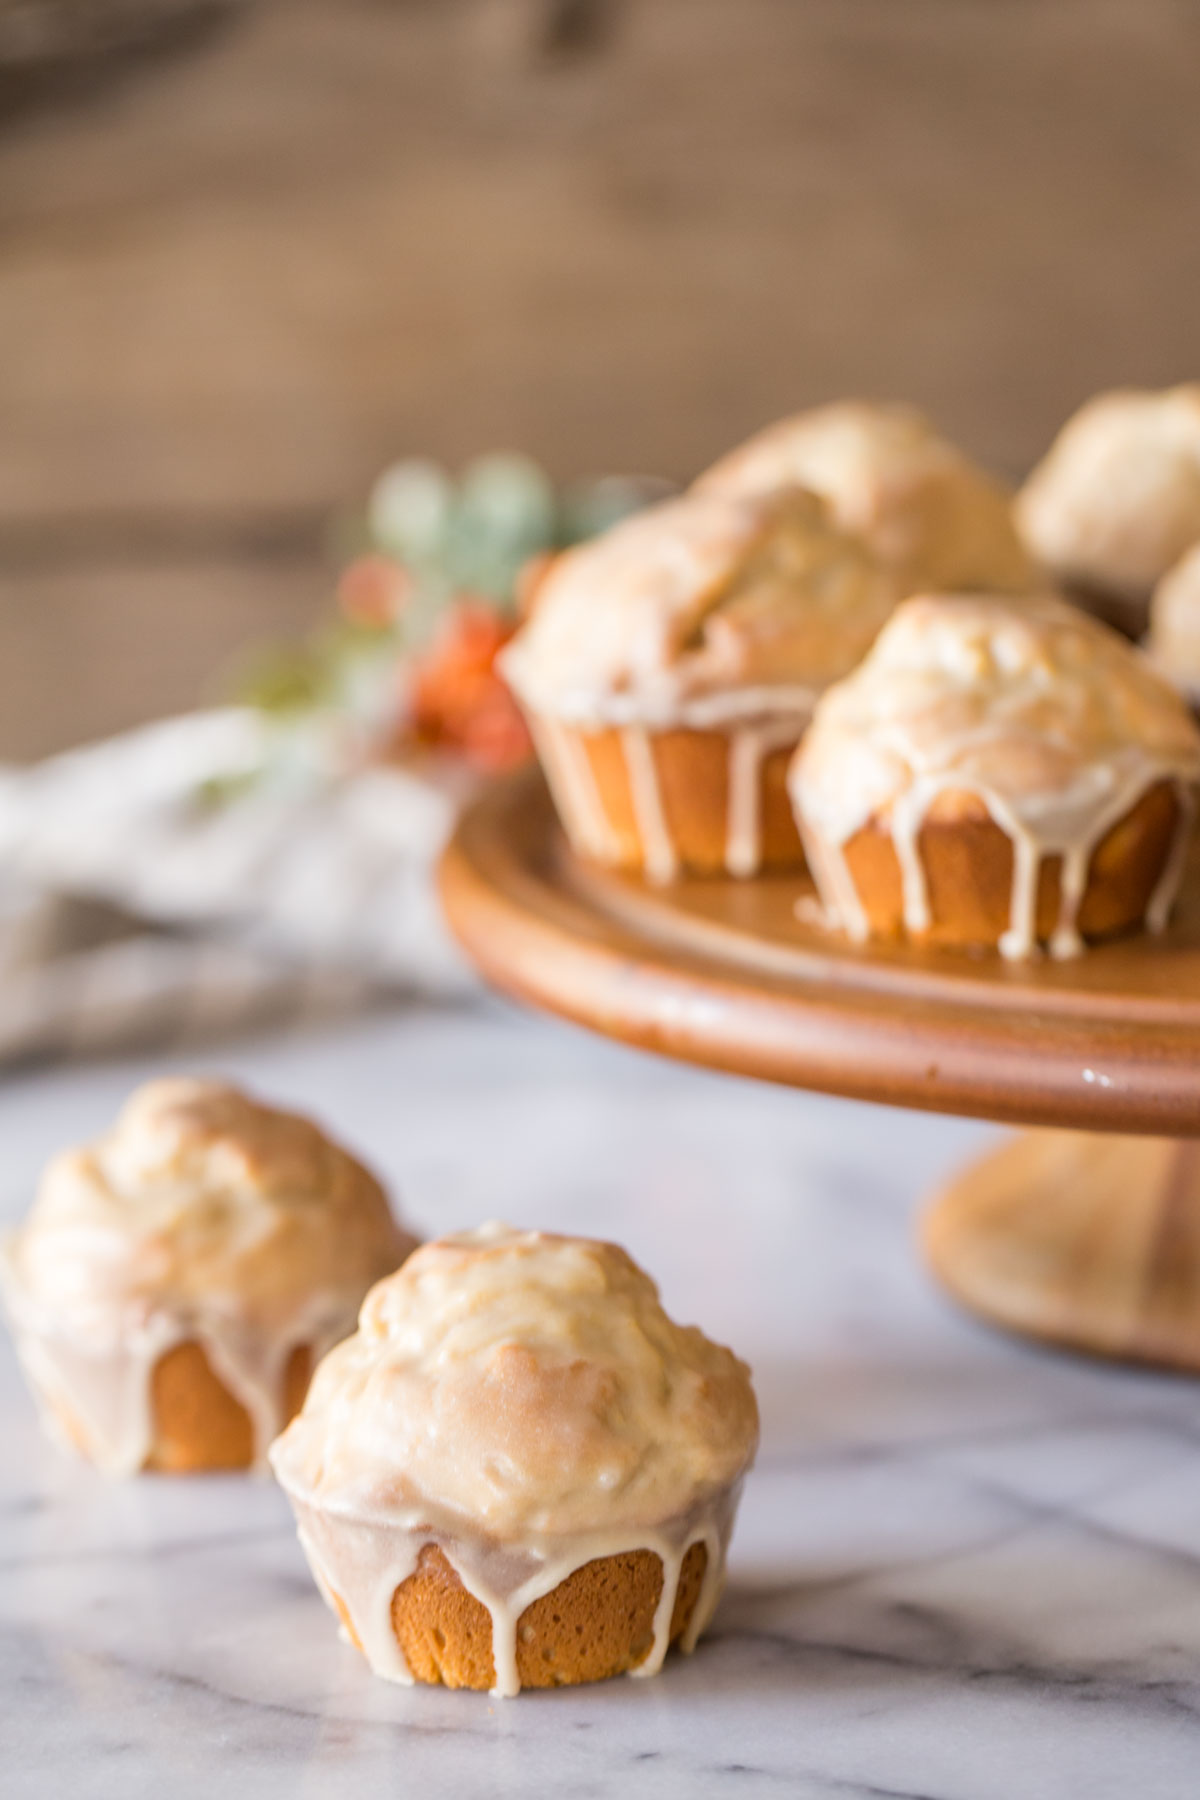 Two Maple Glazed Donut Muffins sitting next to a wood cake stand with more Maple Glazed Donut Muffins on it.